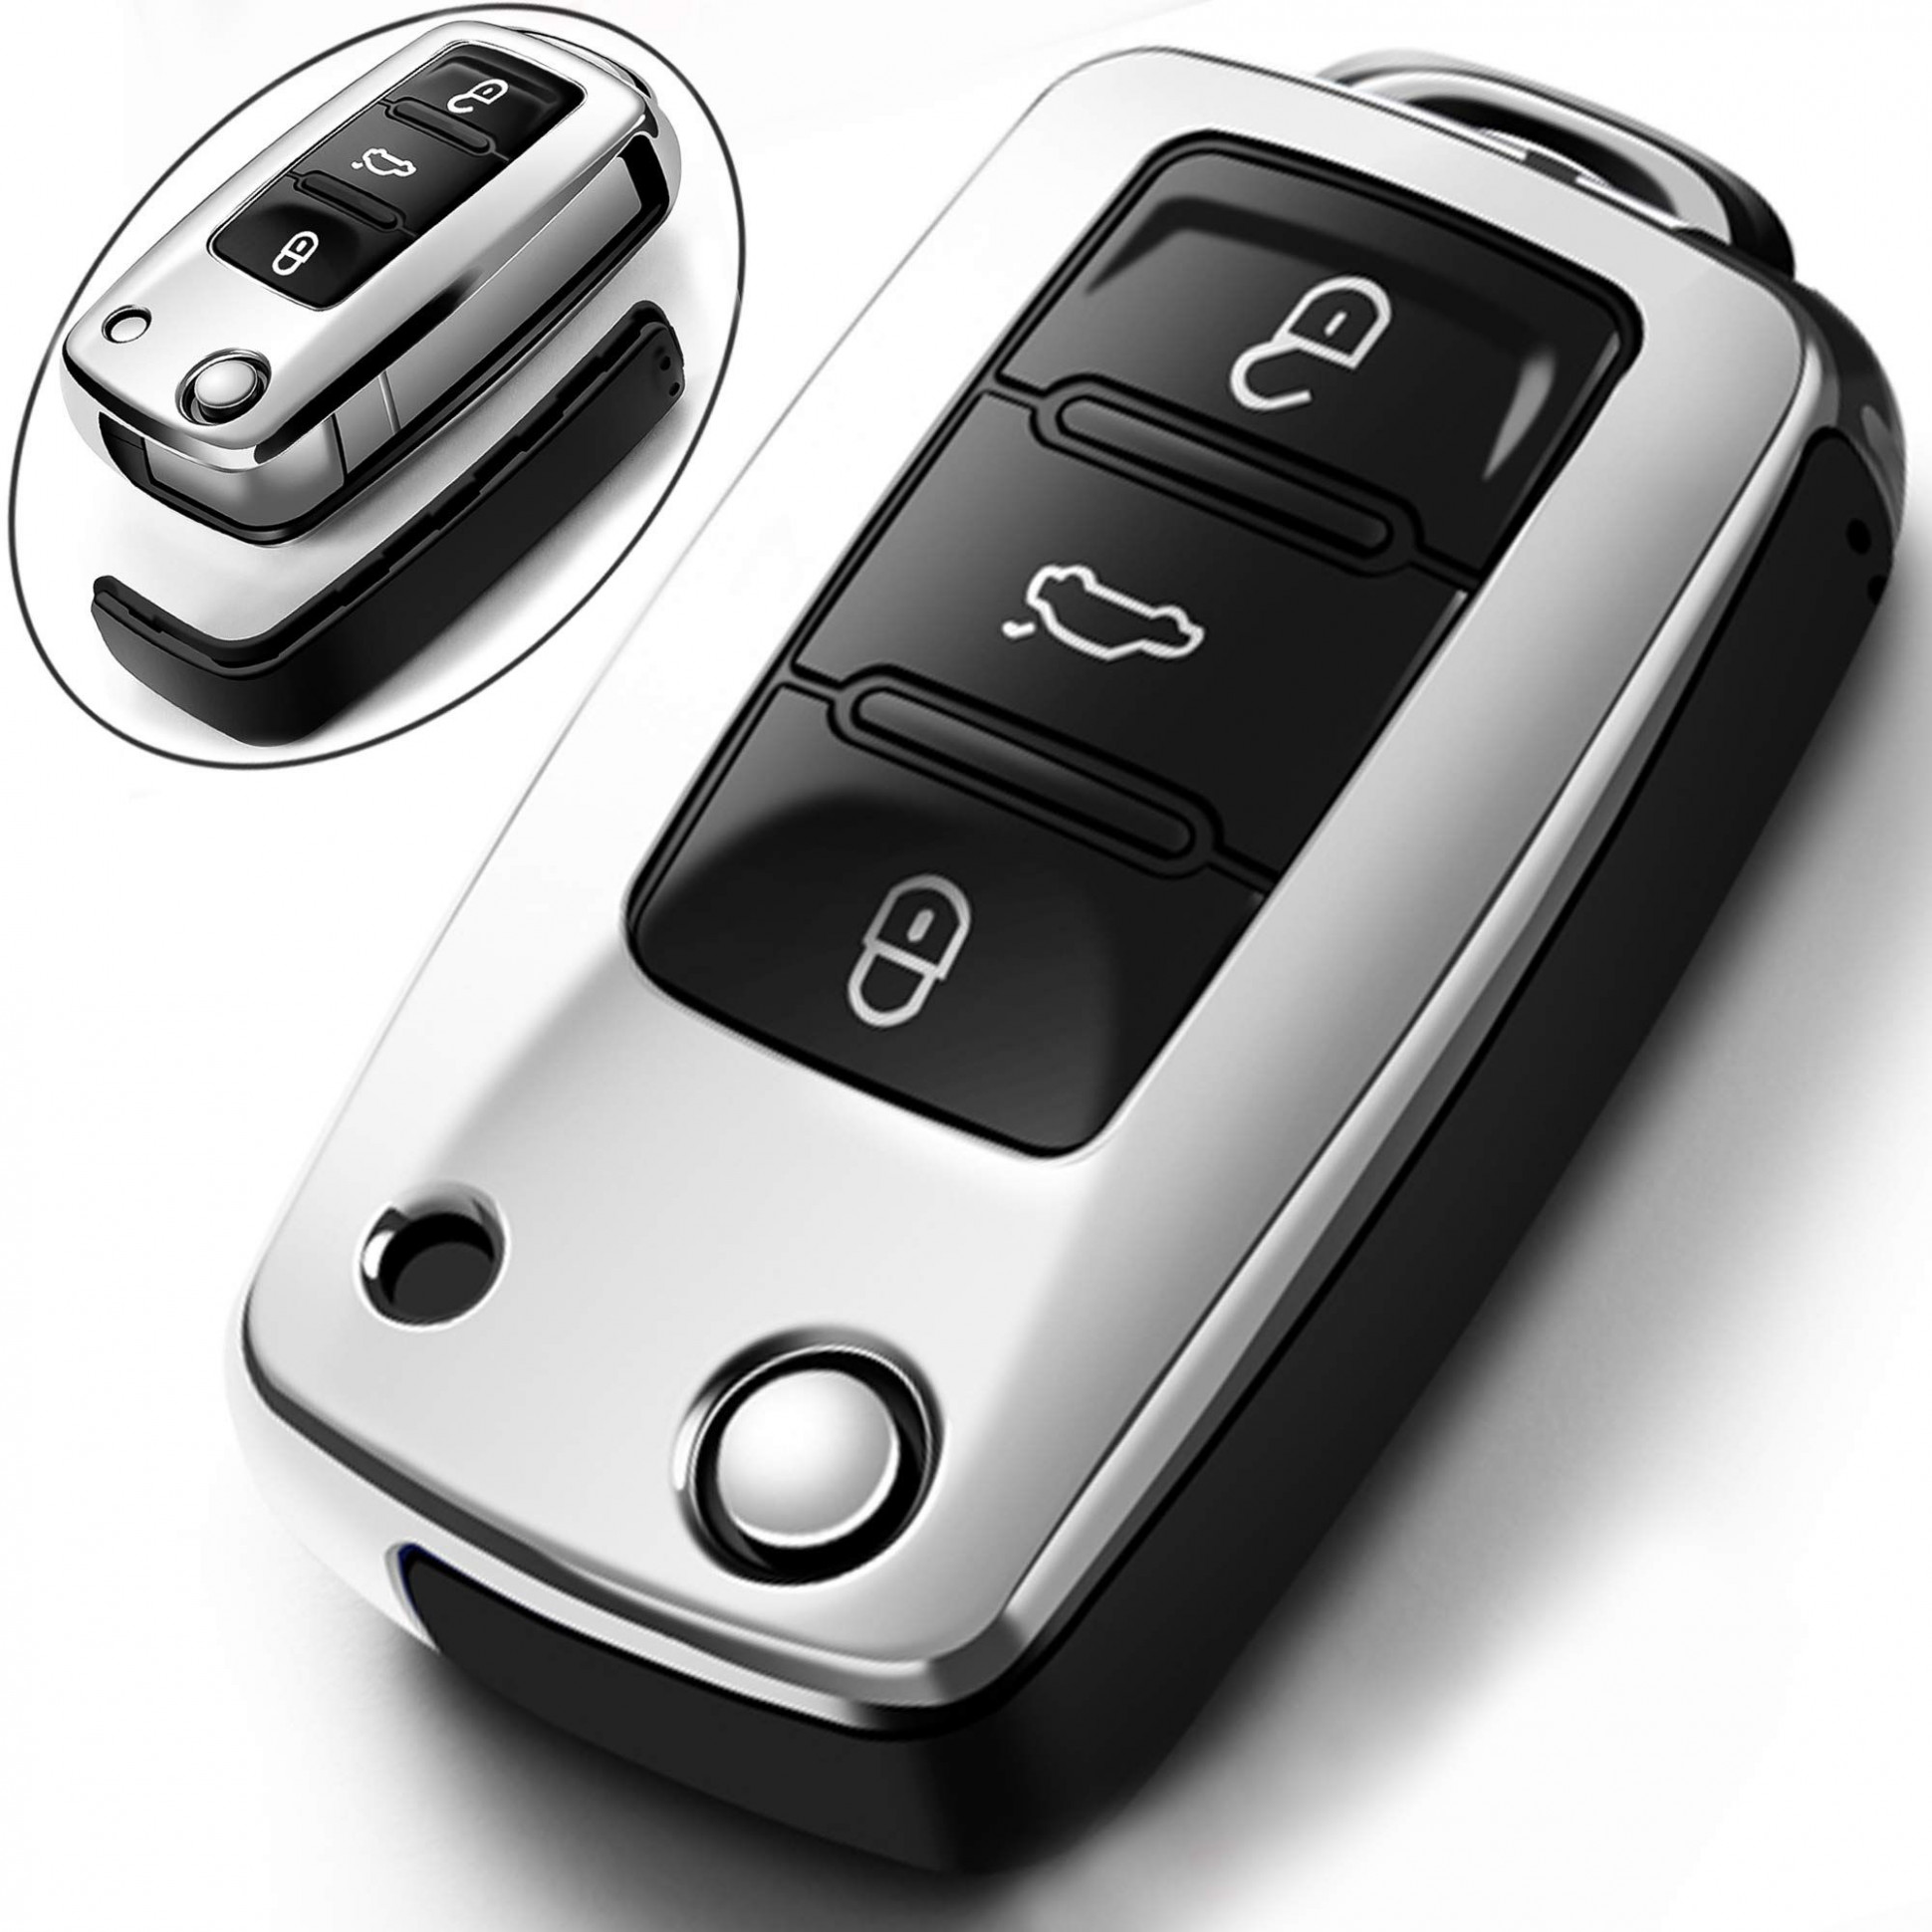 Intermerge for VW Volkswagen Key Fob Cover for VW jetta POLO ...